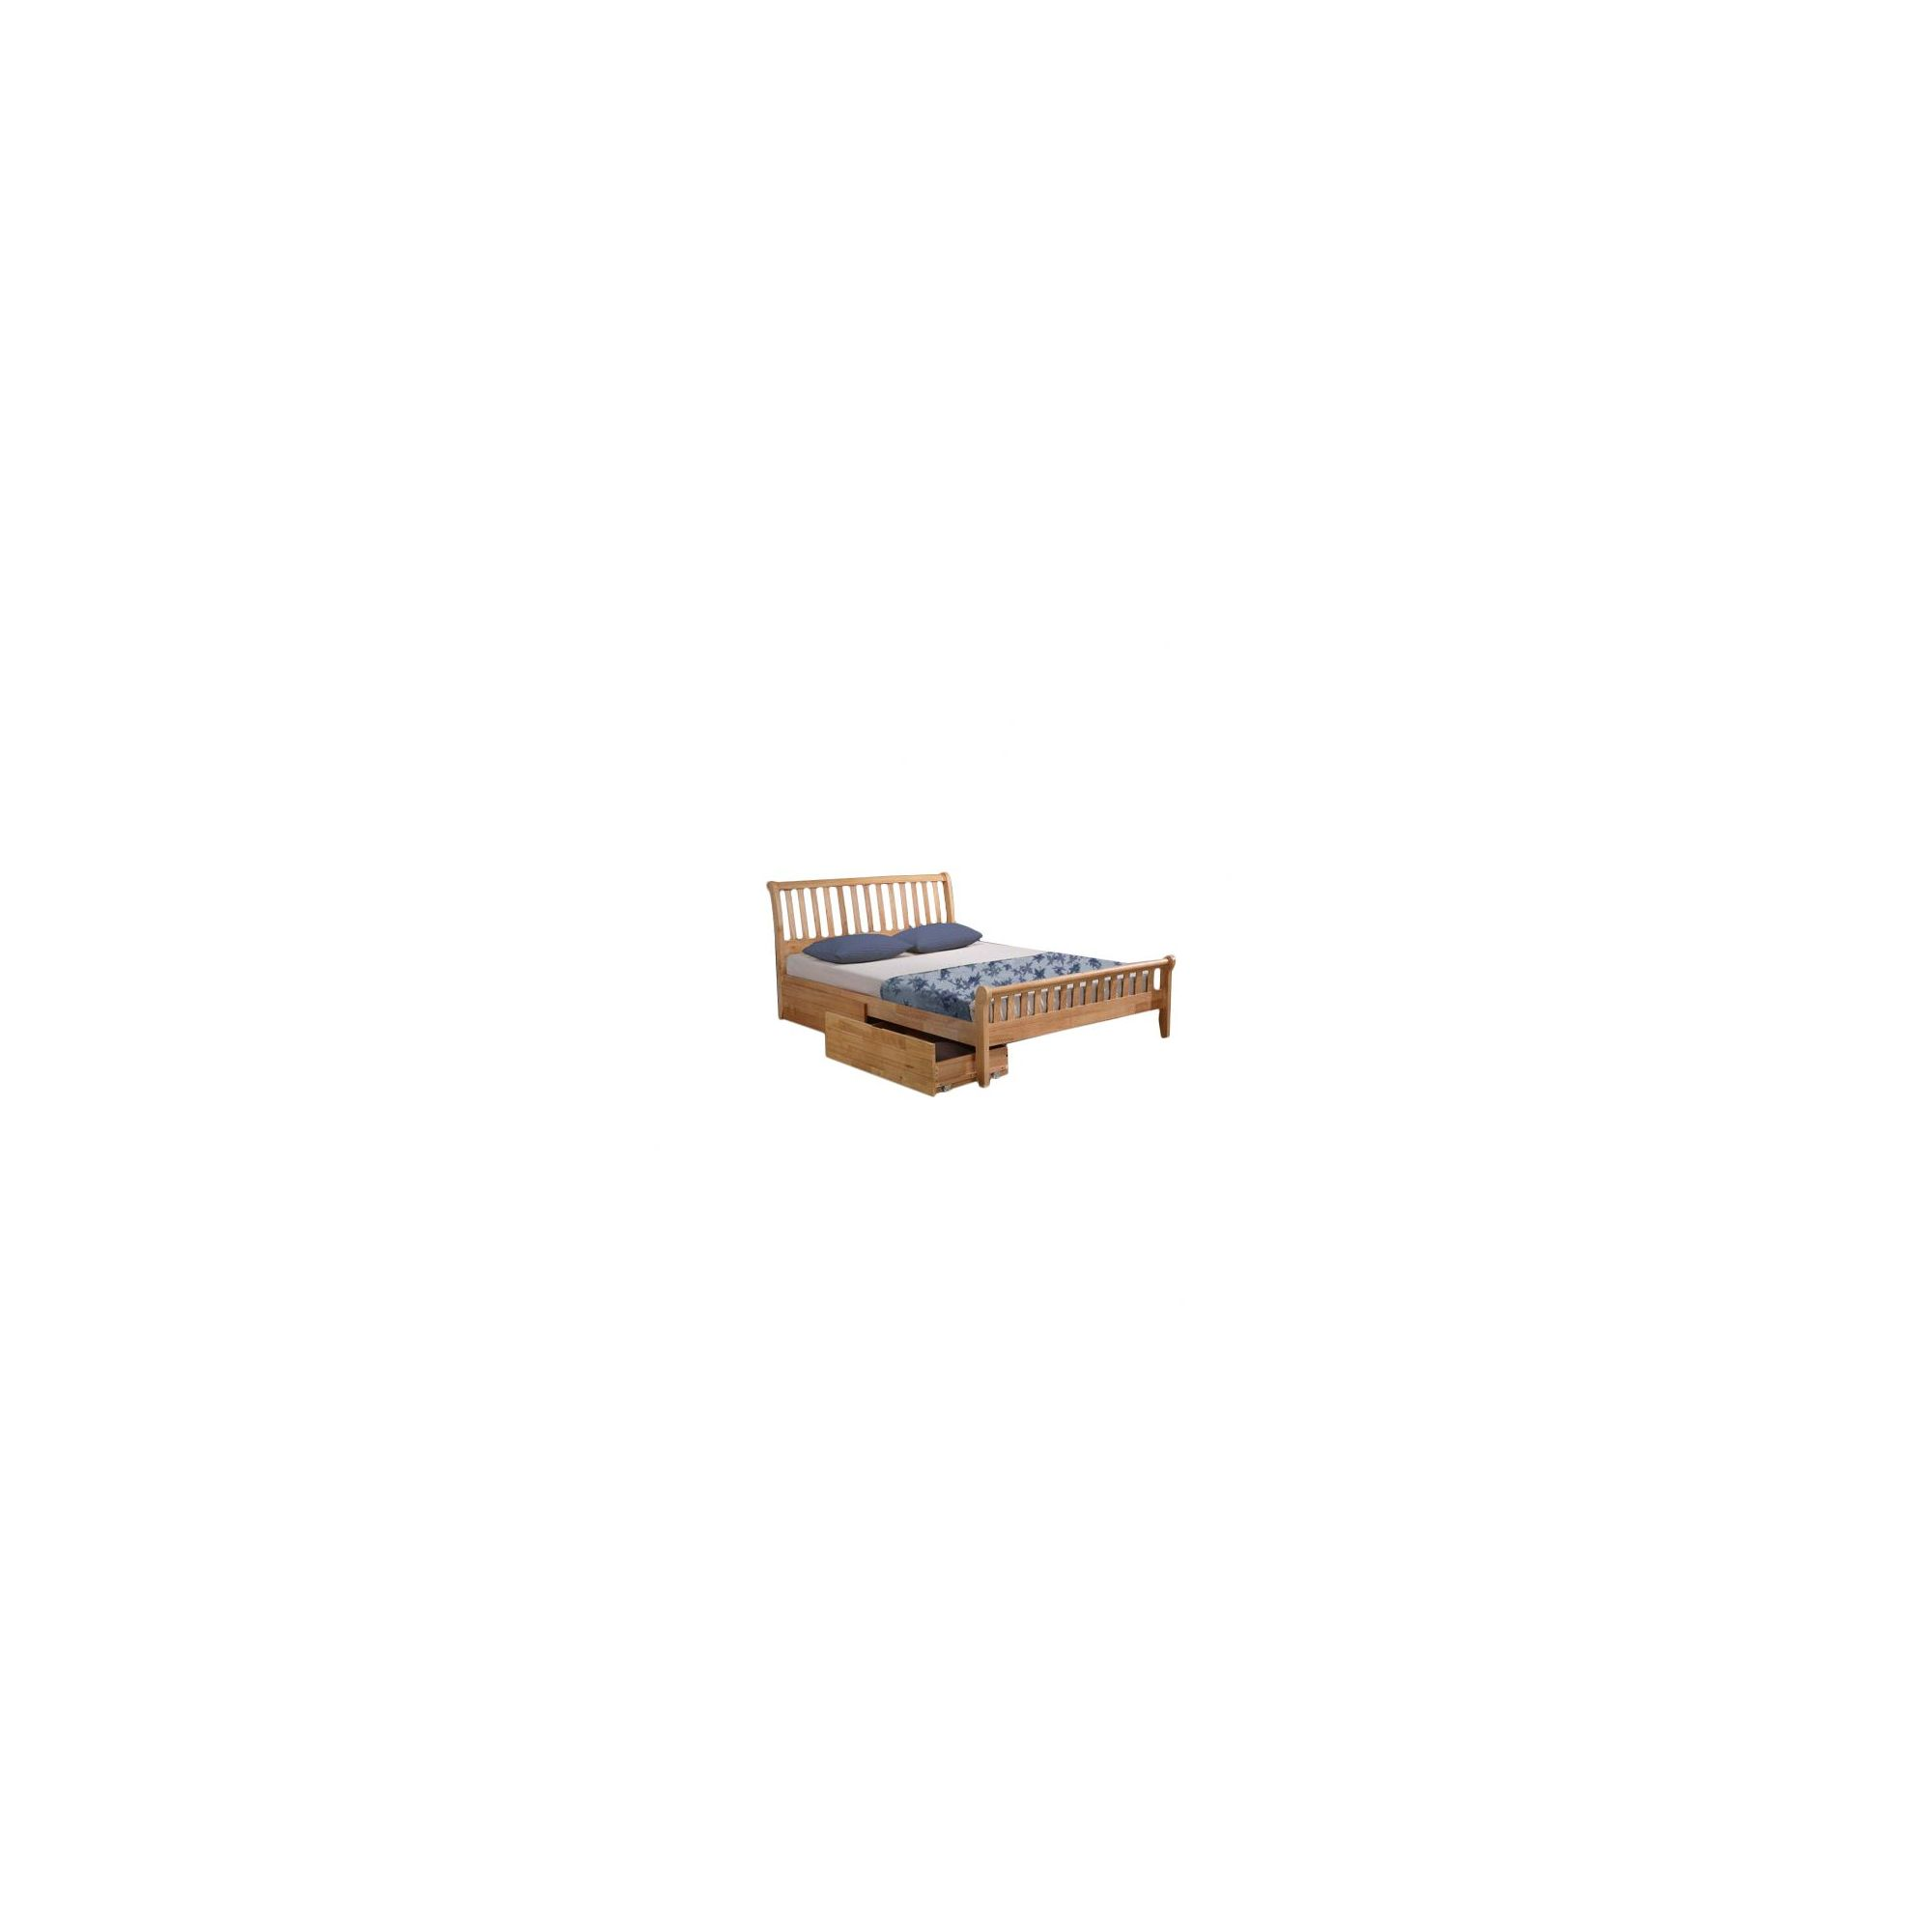 Flintshire Furniture Padeswood Bedstead - Single - With 2 Drawers at Tescos Direct